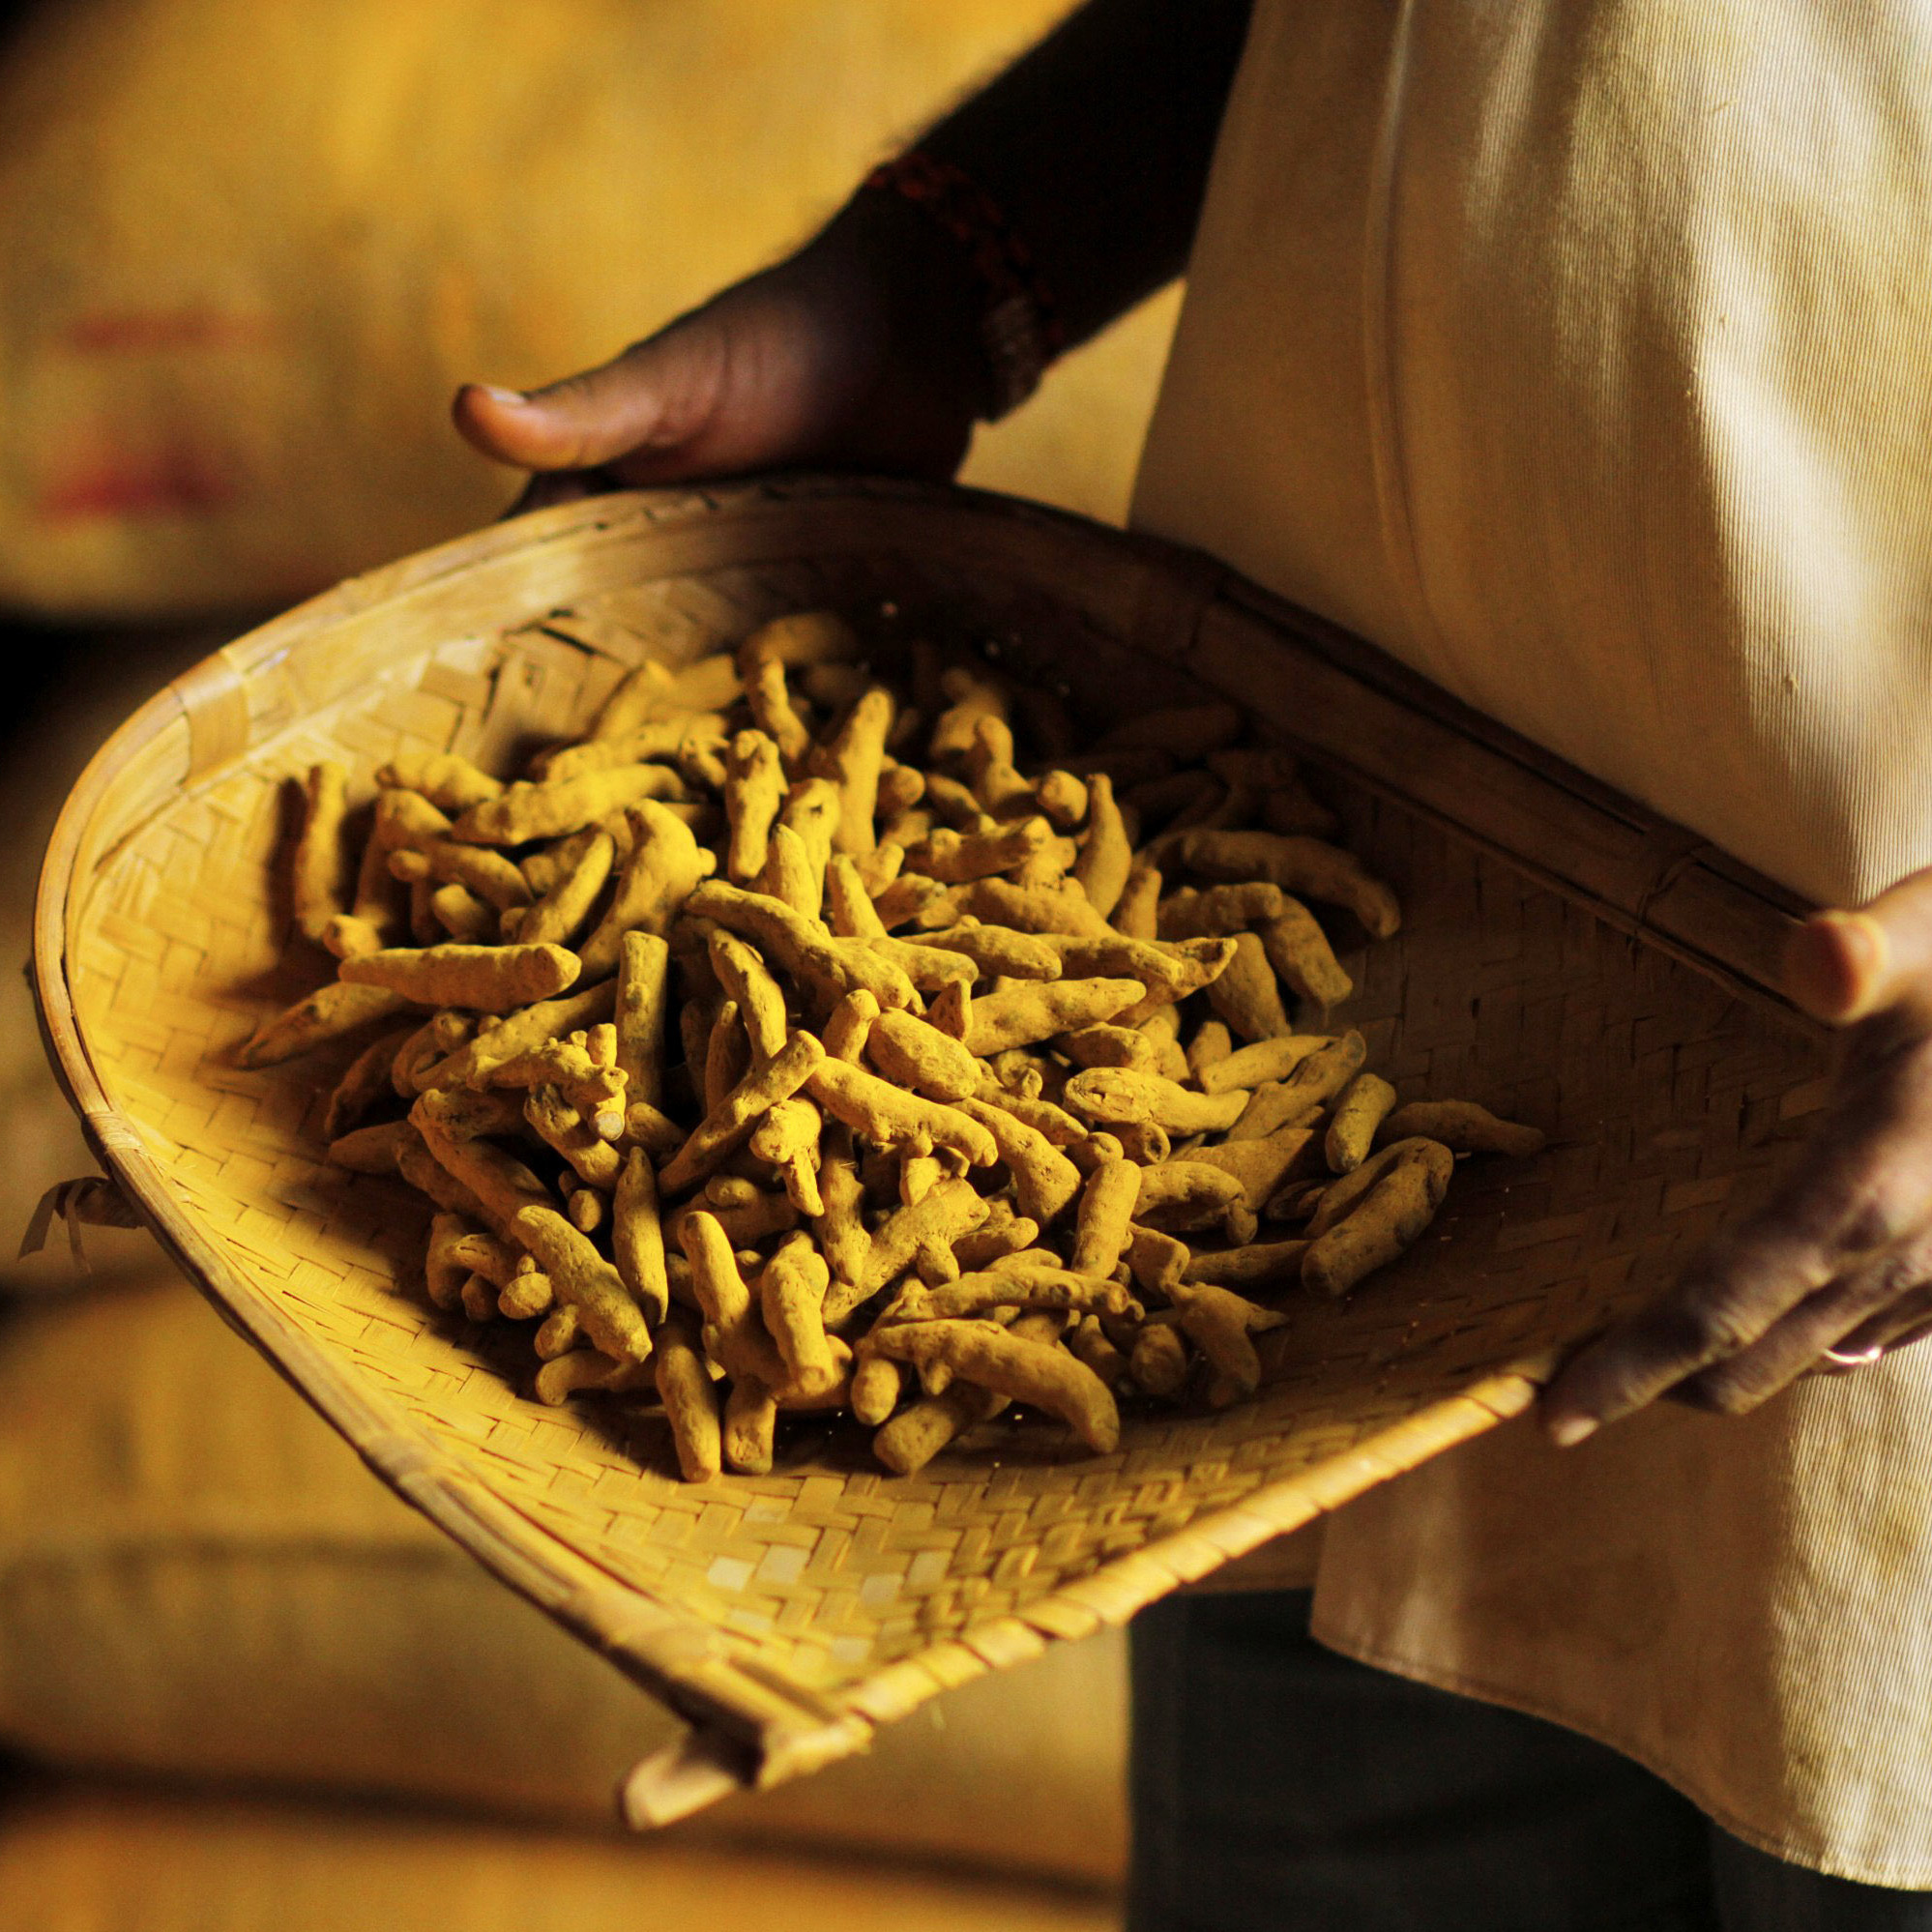 Ground turmeric comes from a golden-yellow root native to India.